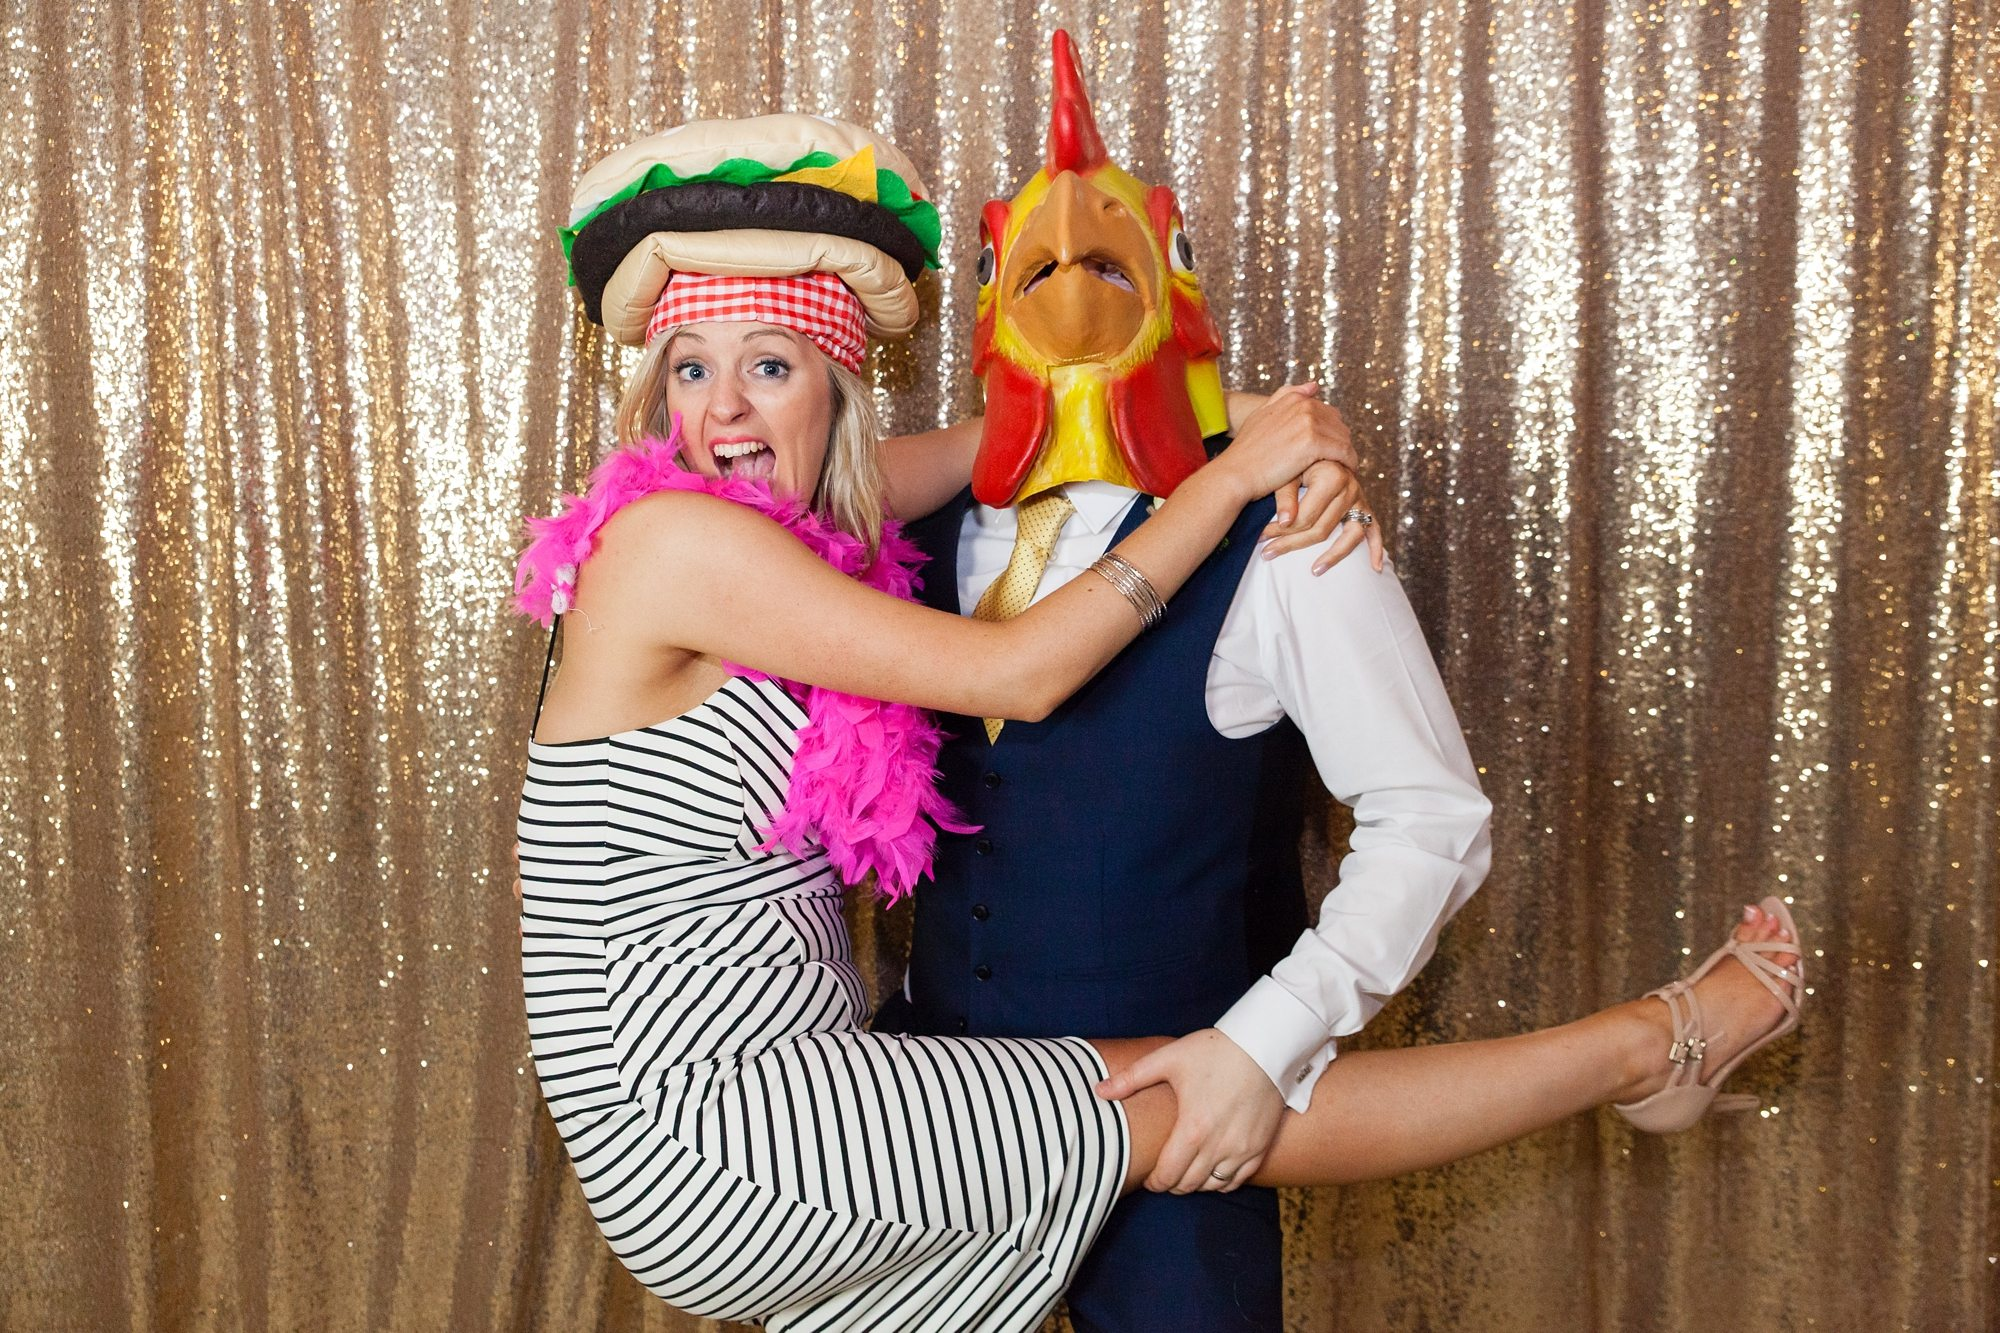 Party photobooth with chickenhead holding guests leg